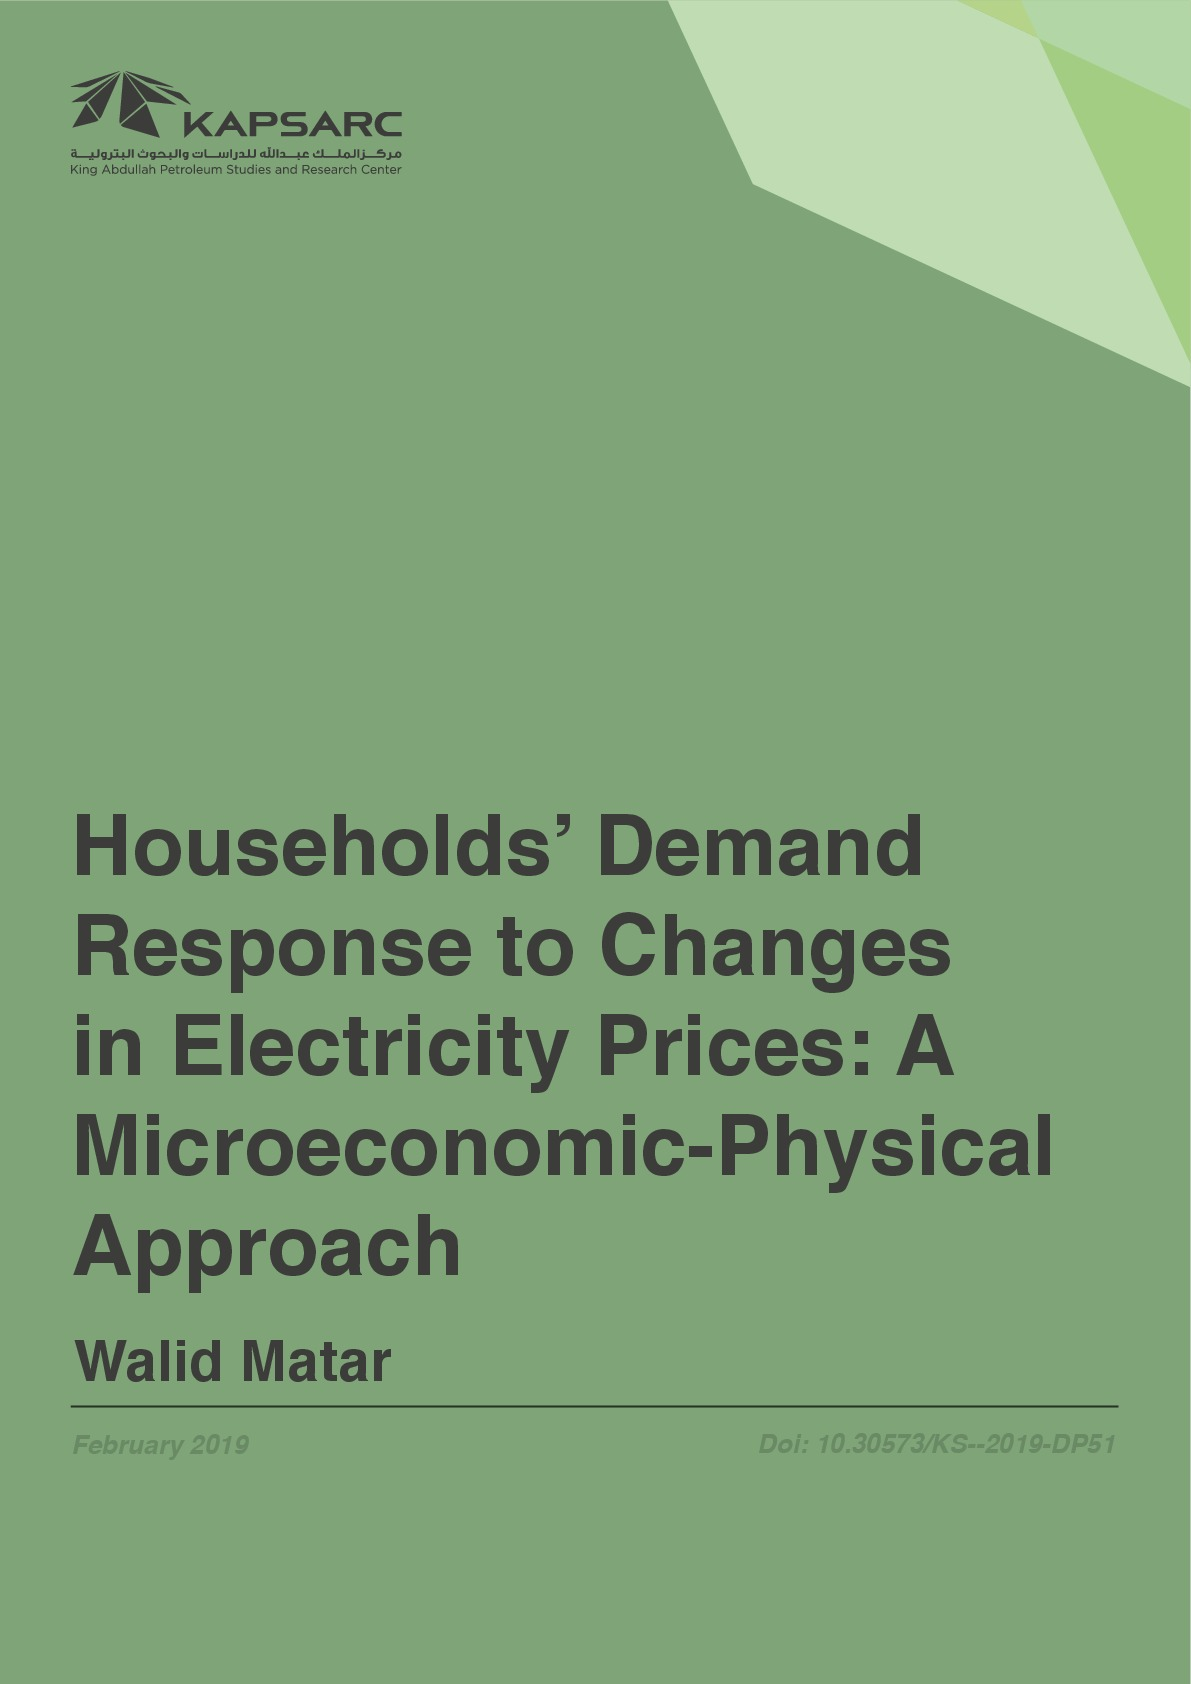 Households' Demand Response to Changes in Electricity Prices: A Microeconomic-Physical Approach